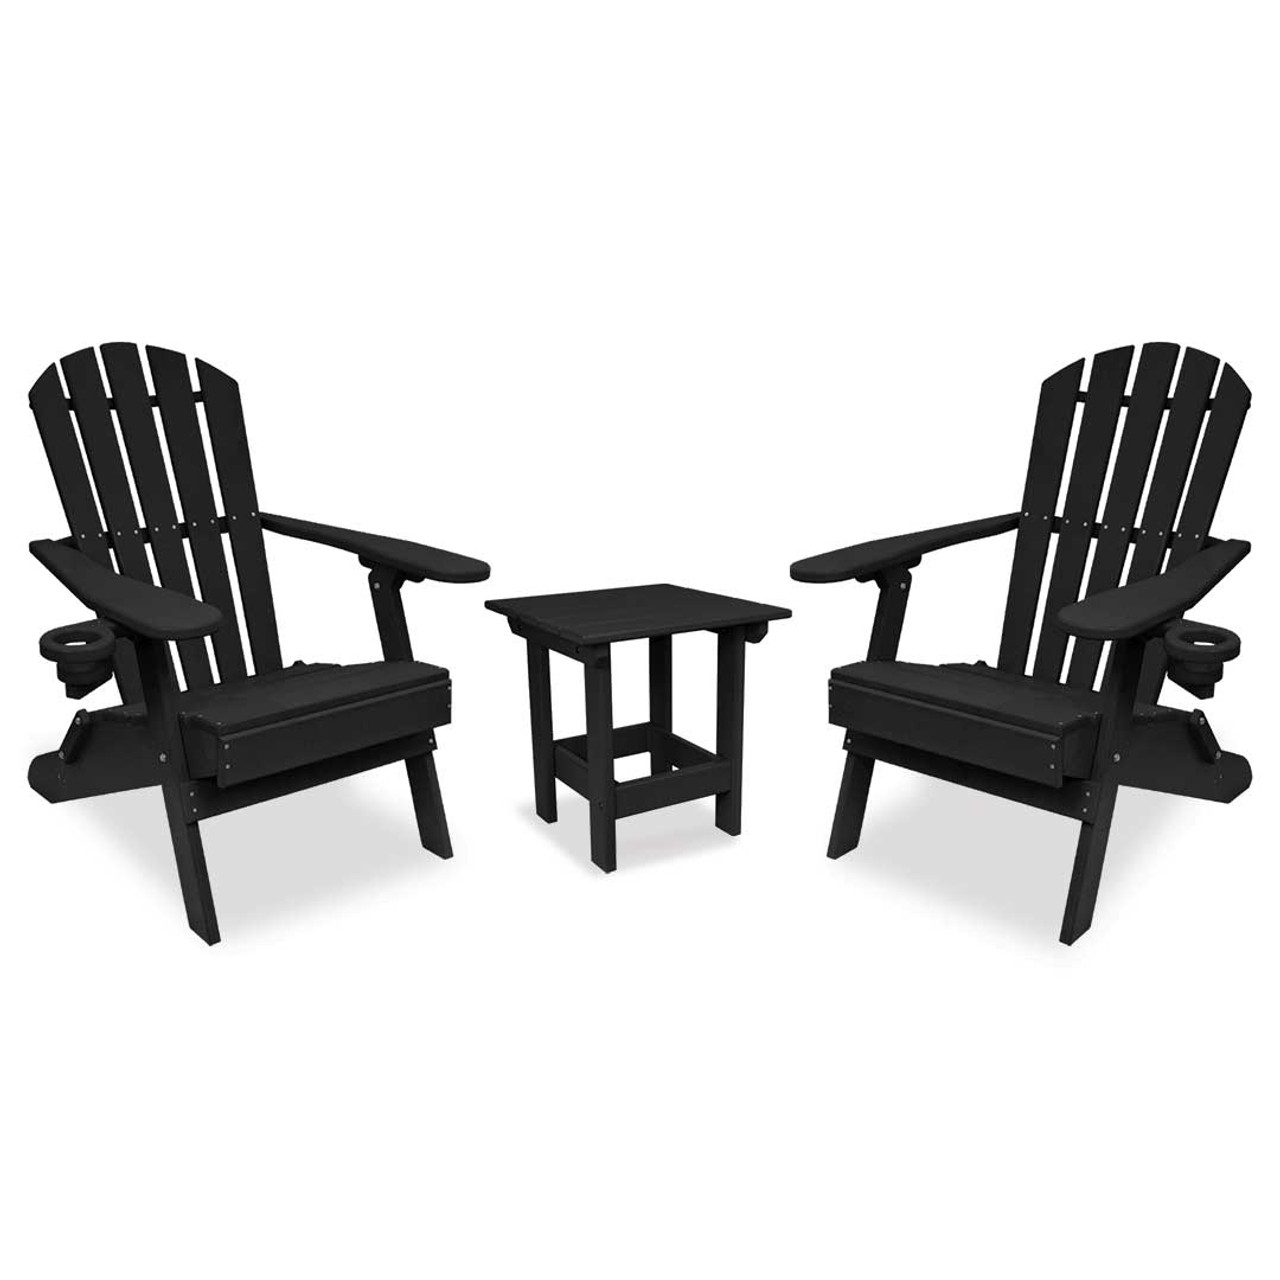 Adirondack Chair Set Outer Banks 3 Piece Value Line Adirondack Chair Set With Value Line Square Table Available In 14 Colors